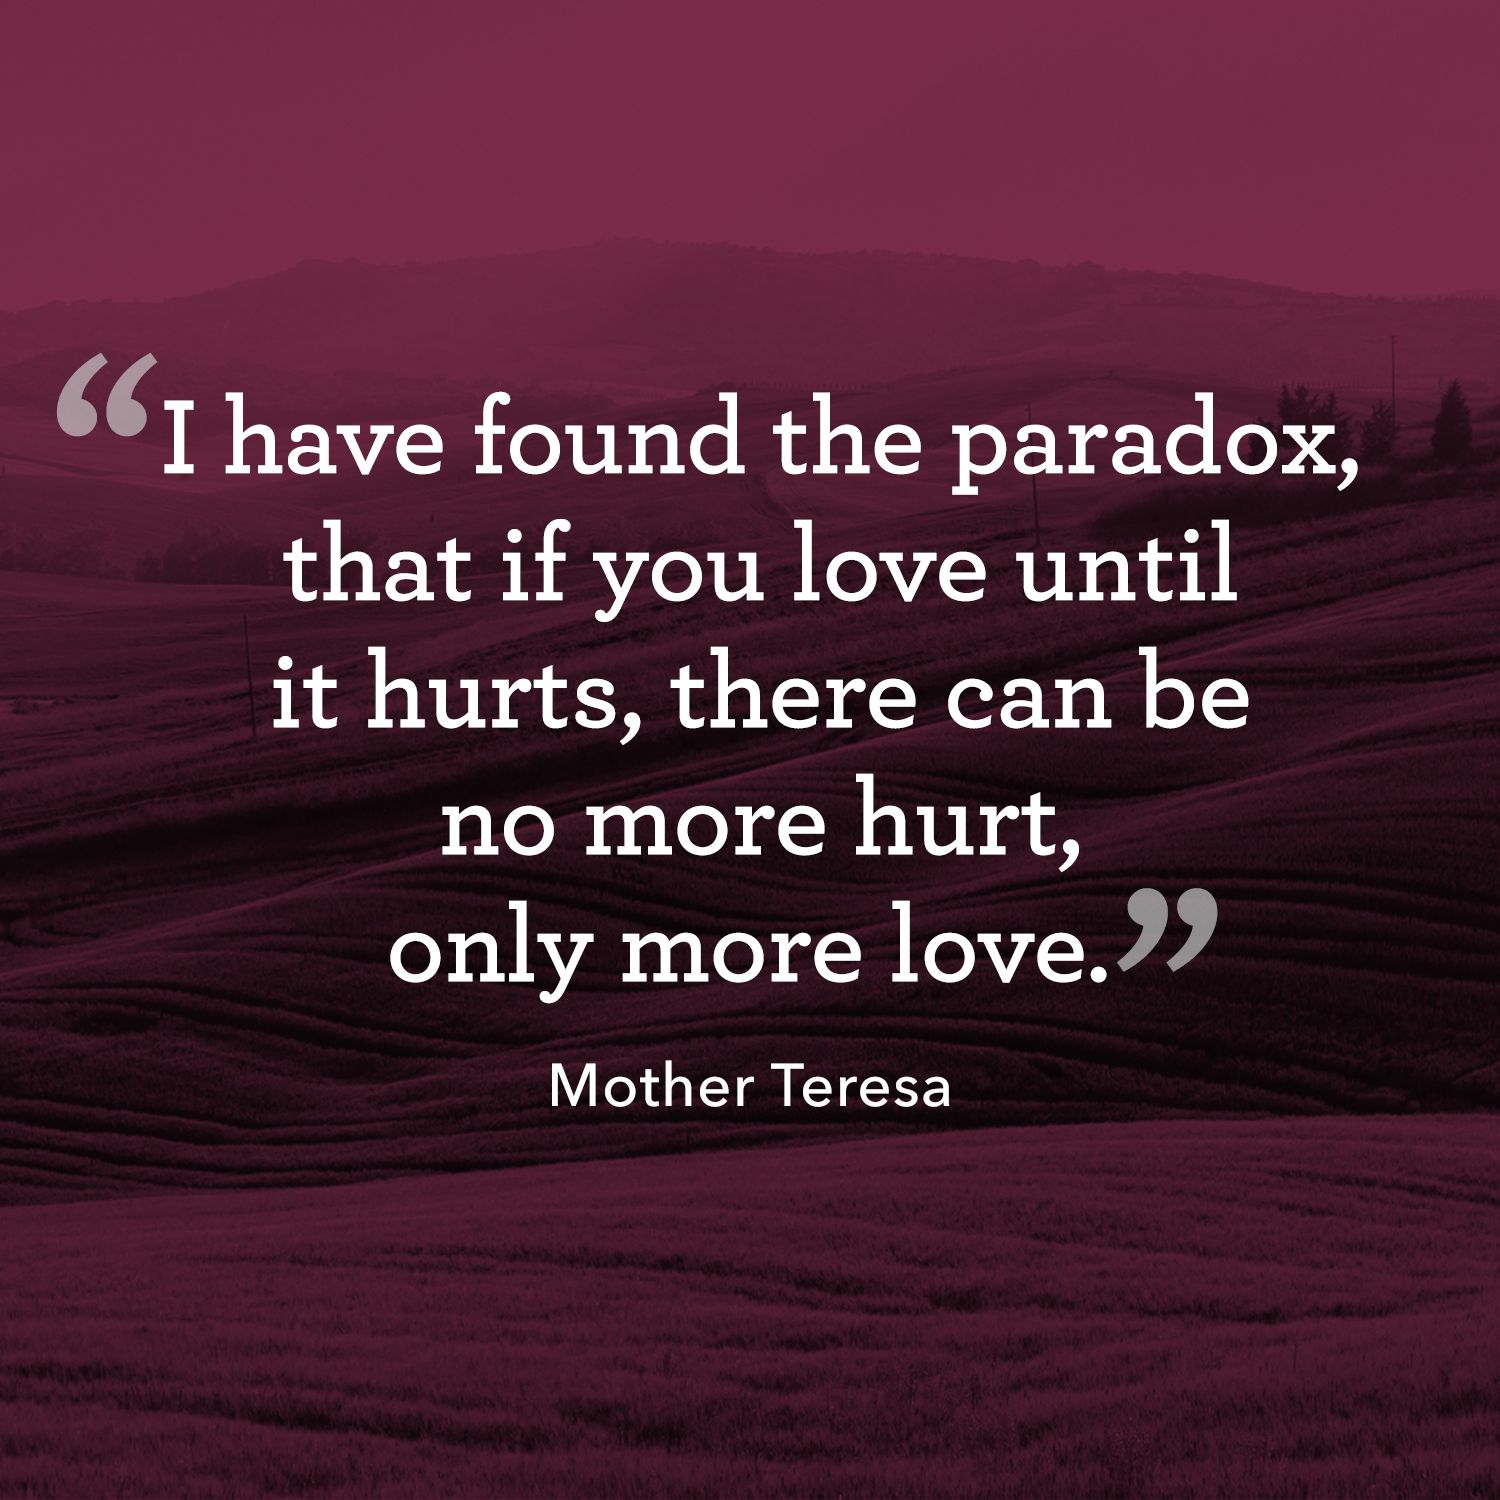 "<p>""I have found the paradox that if you love until it hurts, there can be no more hurt, only more love.""</p>"